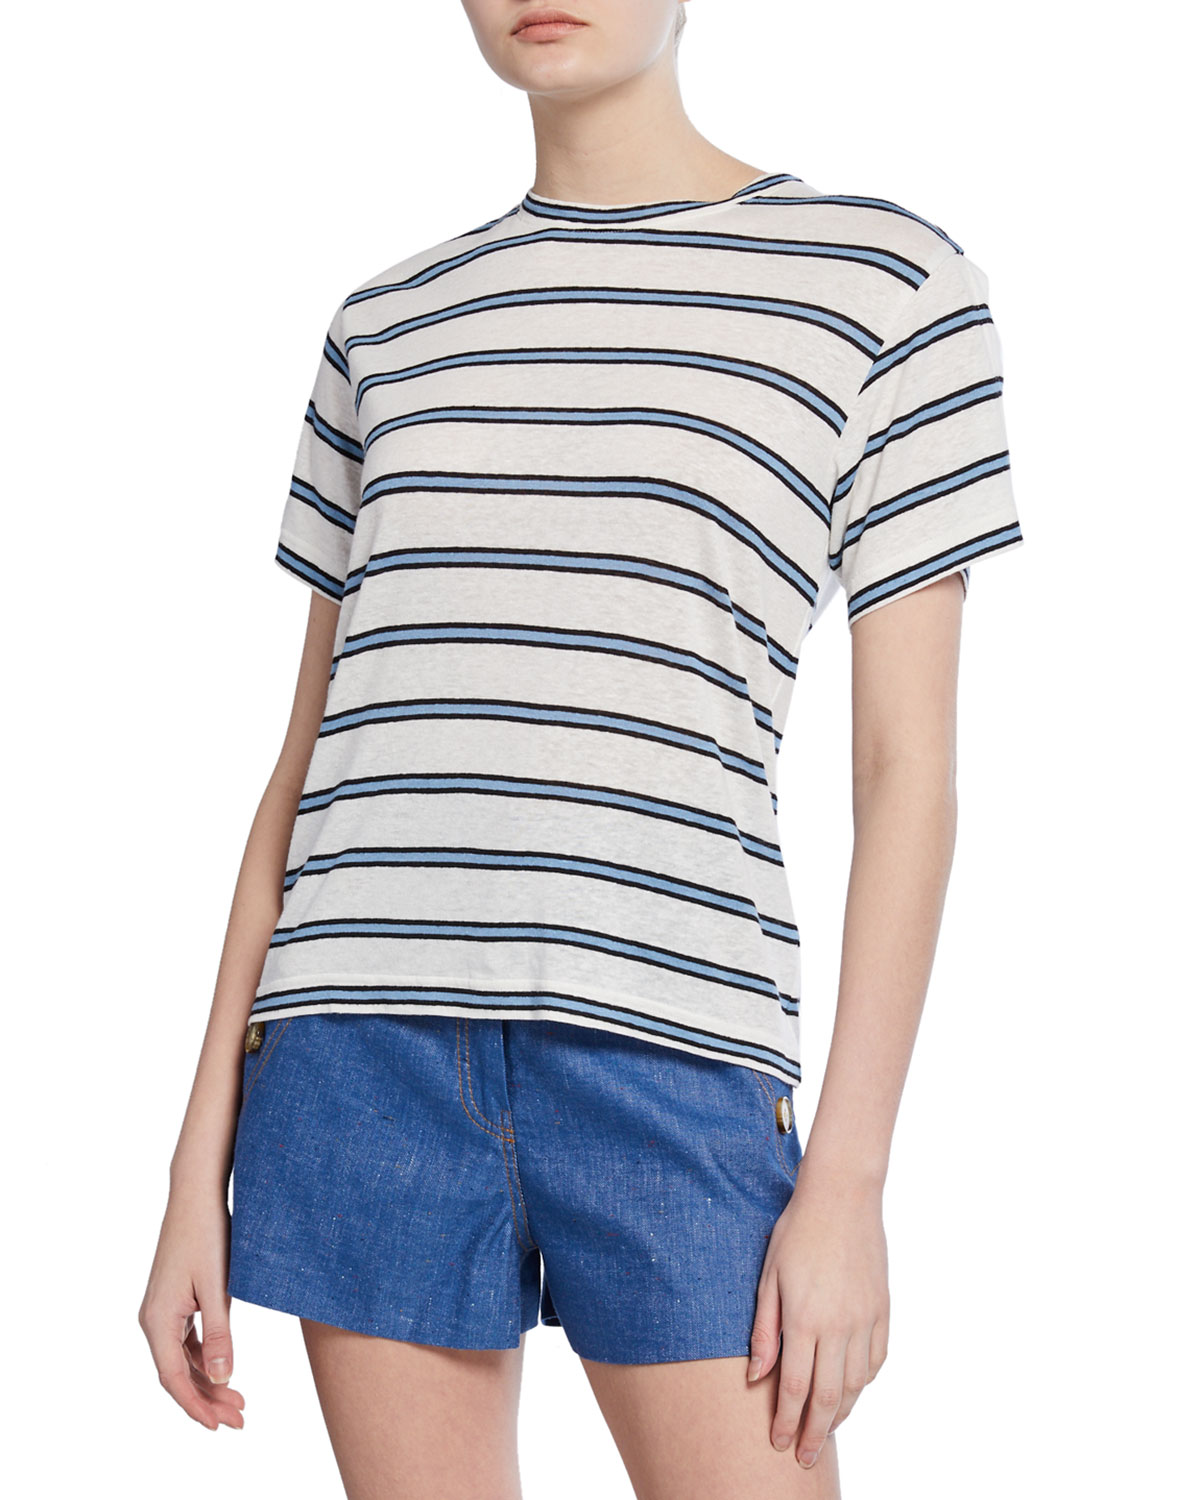 Derek Lam 10 Crosby Striped Crewneck Short-Sleeve Tee w/ Slit Detail